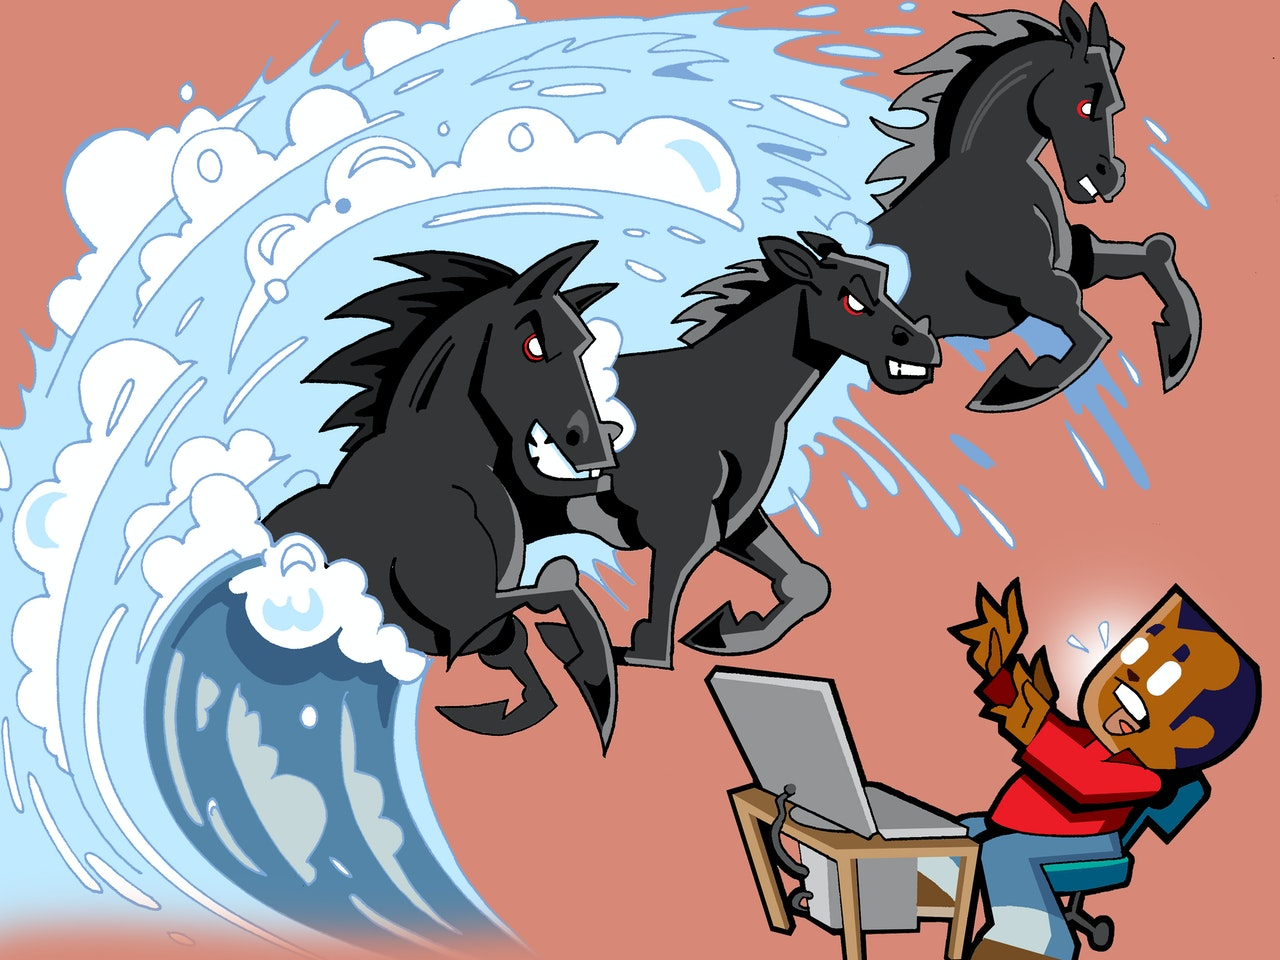 computer black horses tidal wave horses surf wipeout internet funny happy humorous comical colourful graphic cartoon